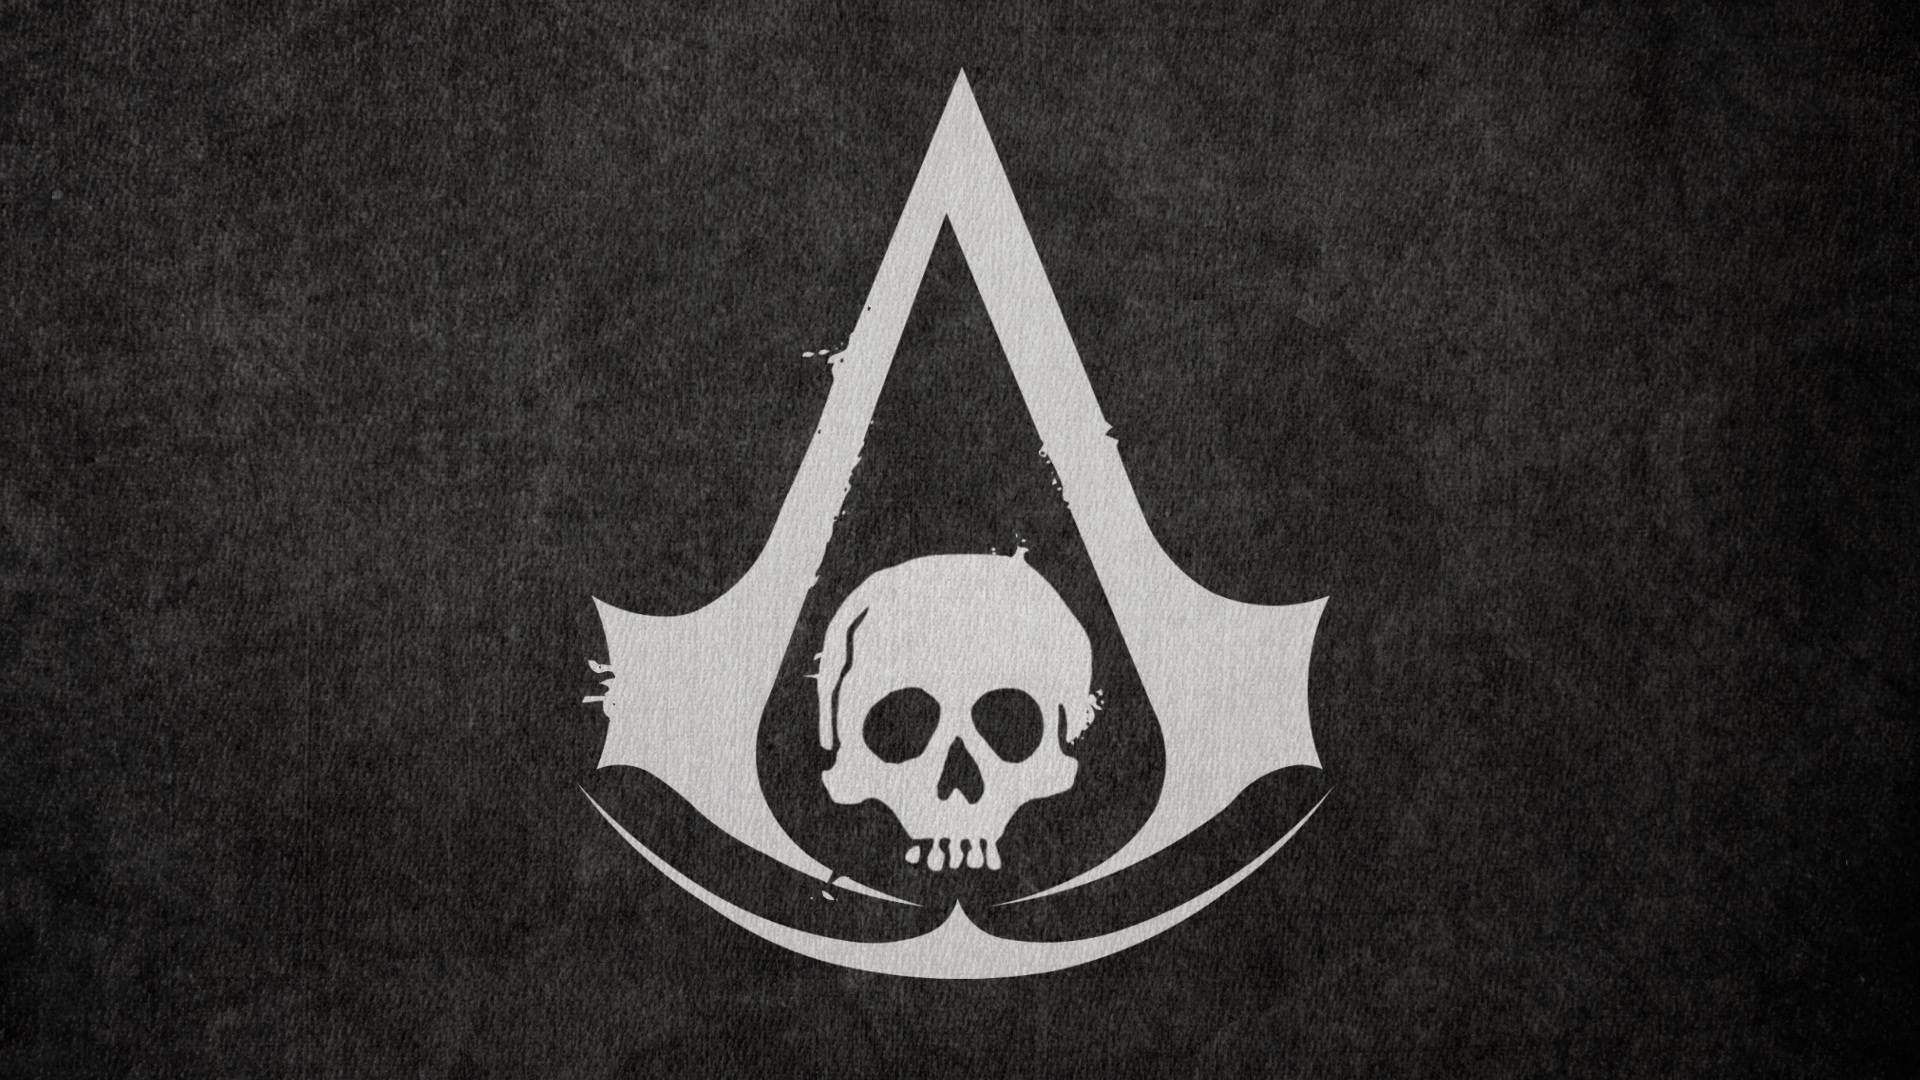 assassins-creed-4-hd-wallpaper.jpg